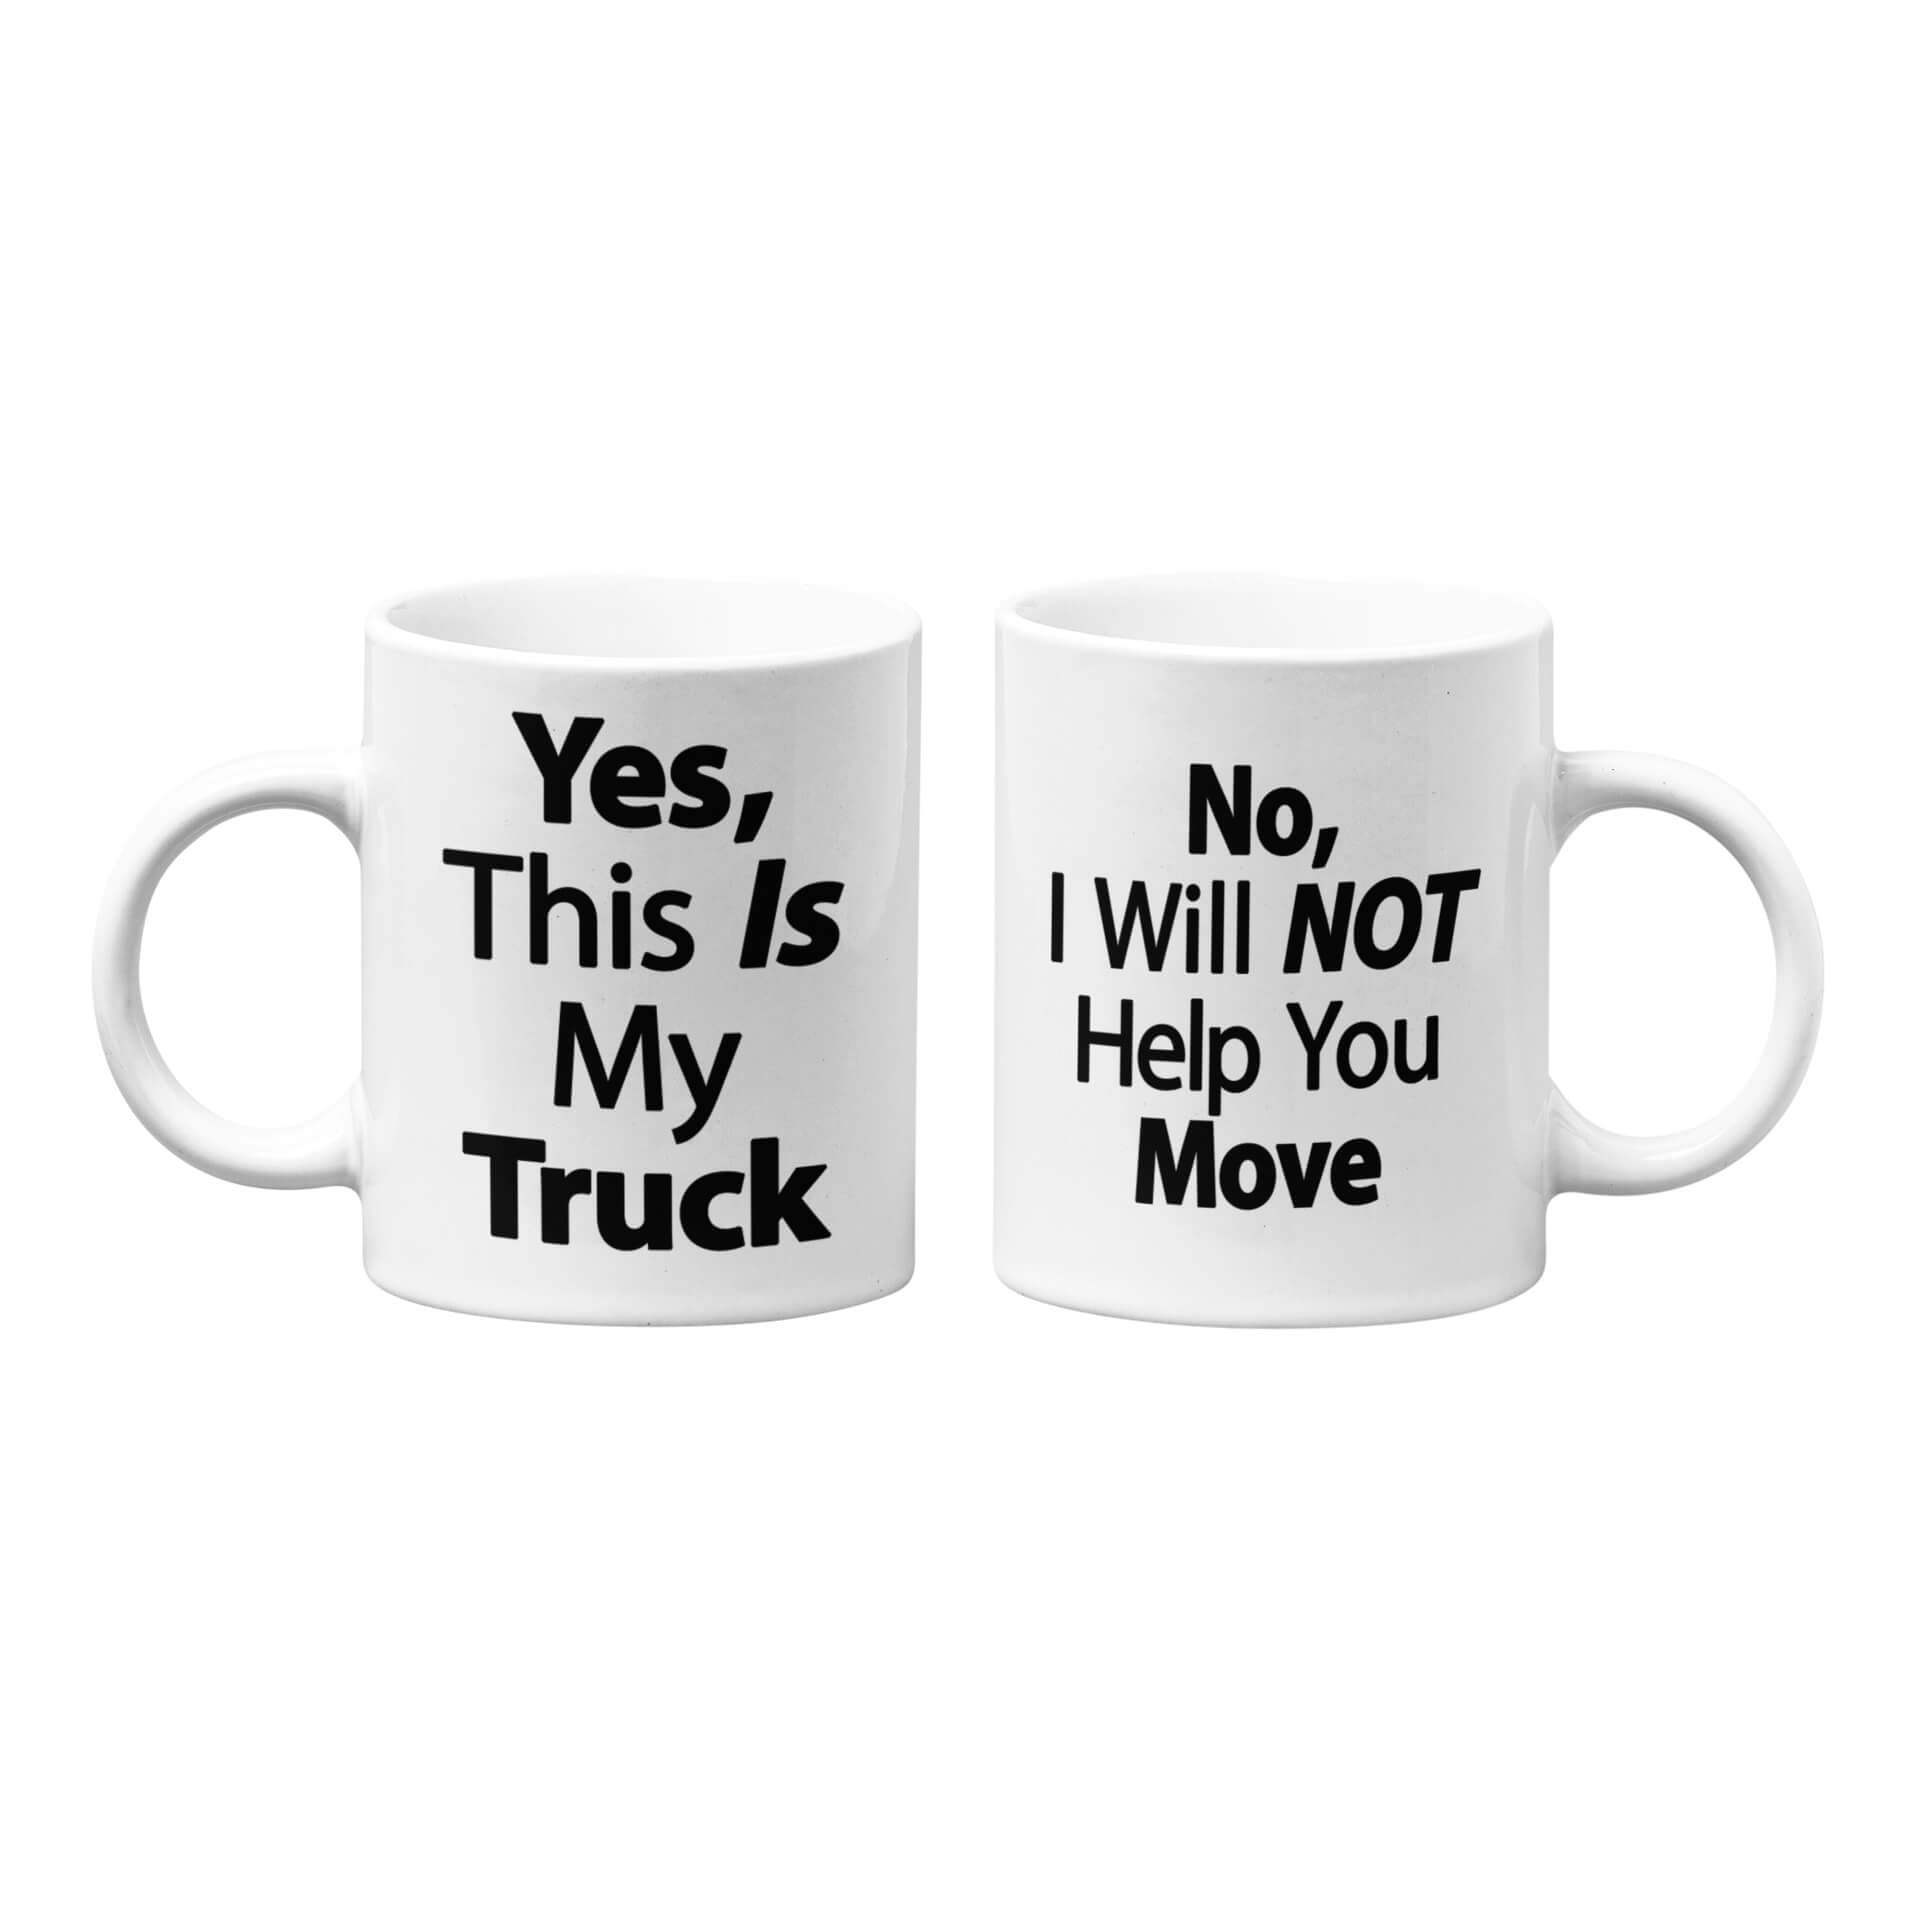 Yes, This Is My Truck - No, I Will Not Help You Move Mug